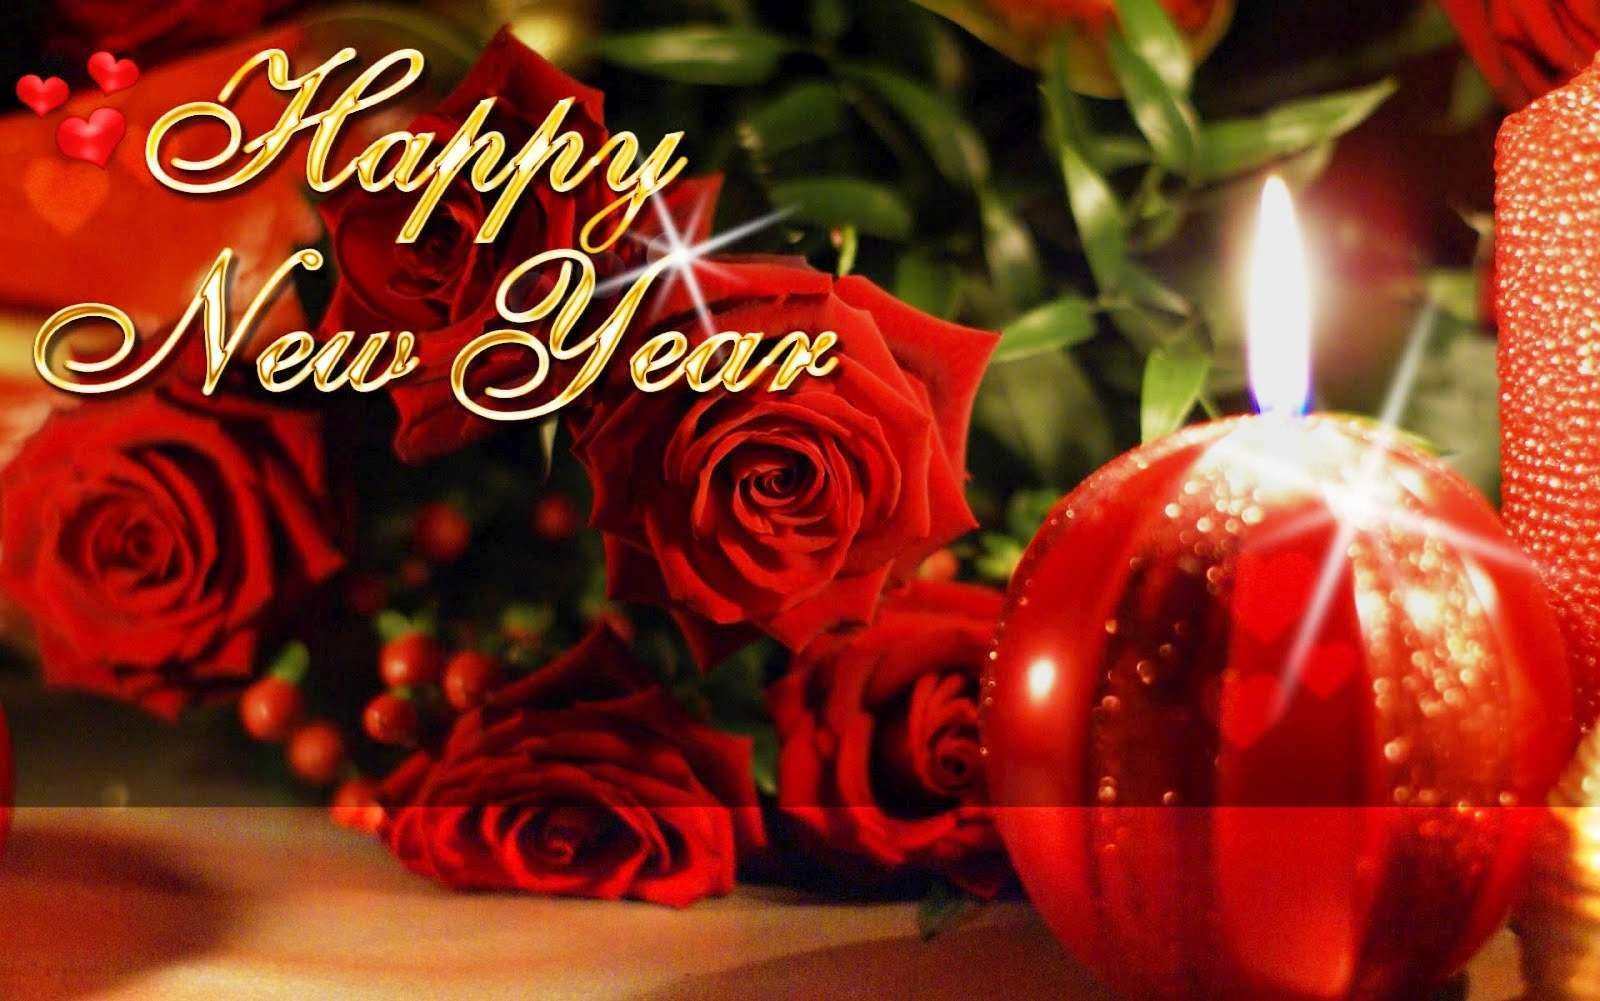 Happy new year images 2015 free greetings wishes cards for happy new year images 2015 free greetings wishes cards for facebook whatsapp wechat kristyandbryce Image collections